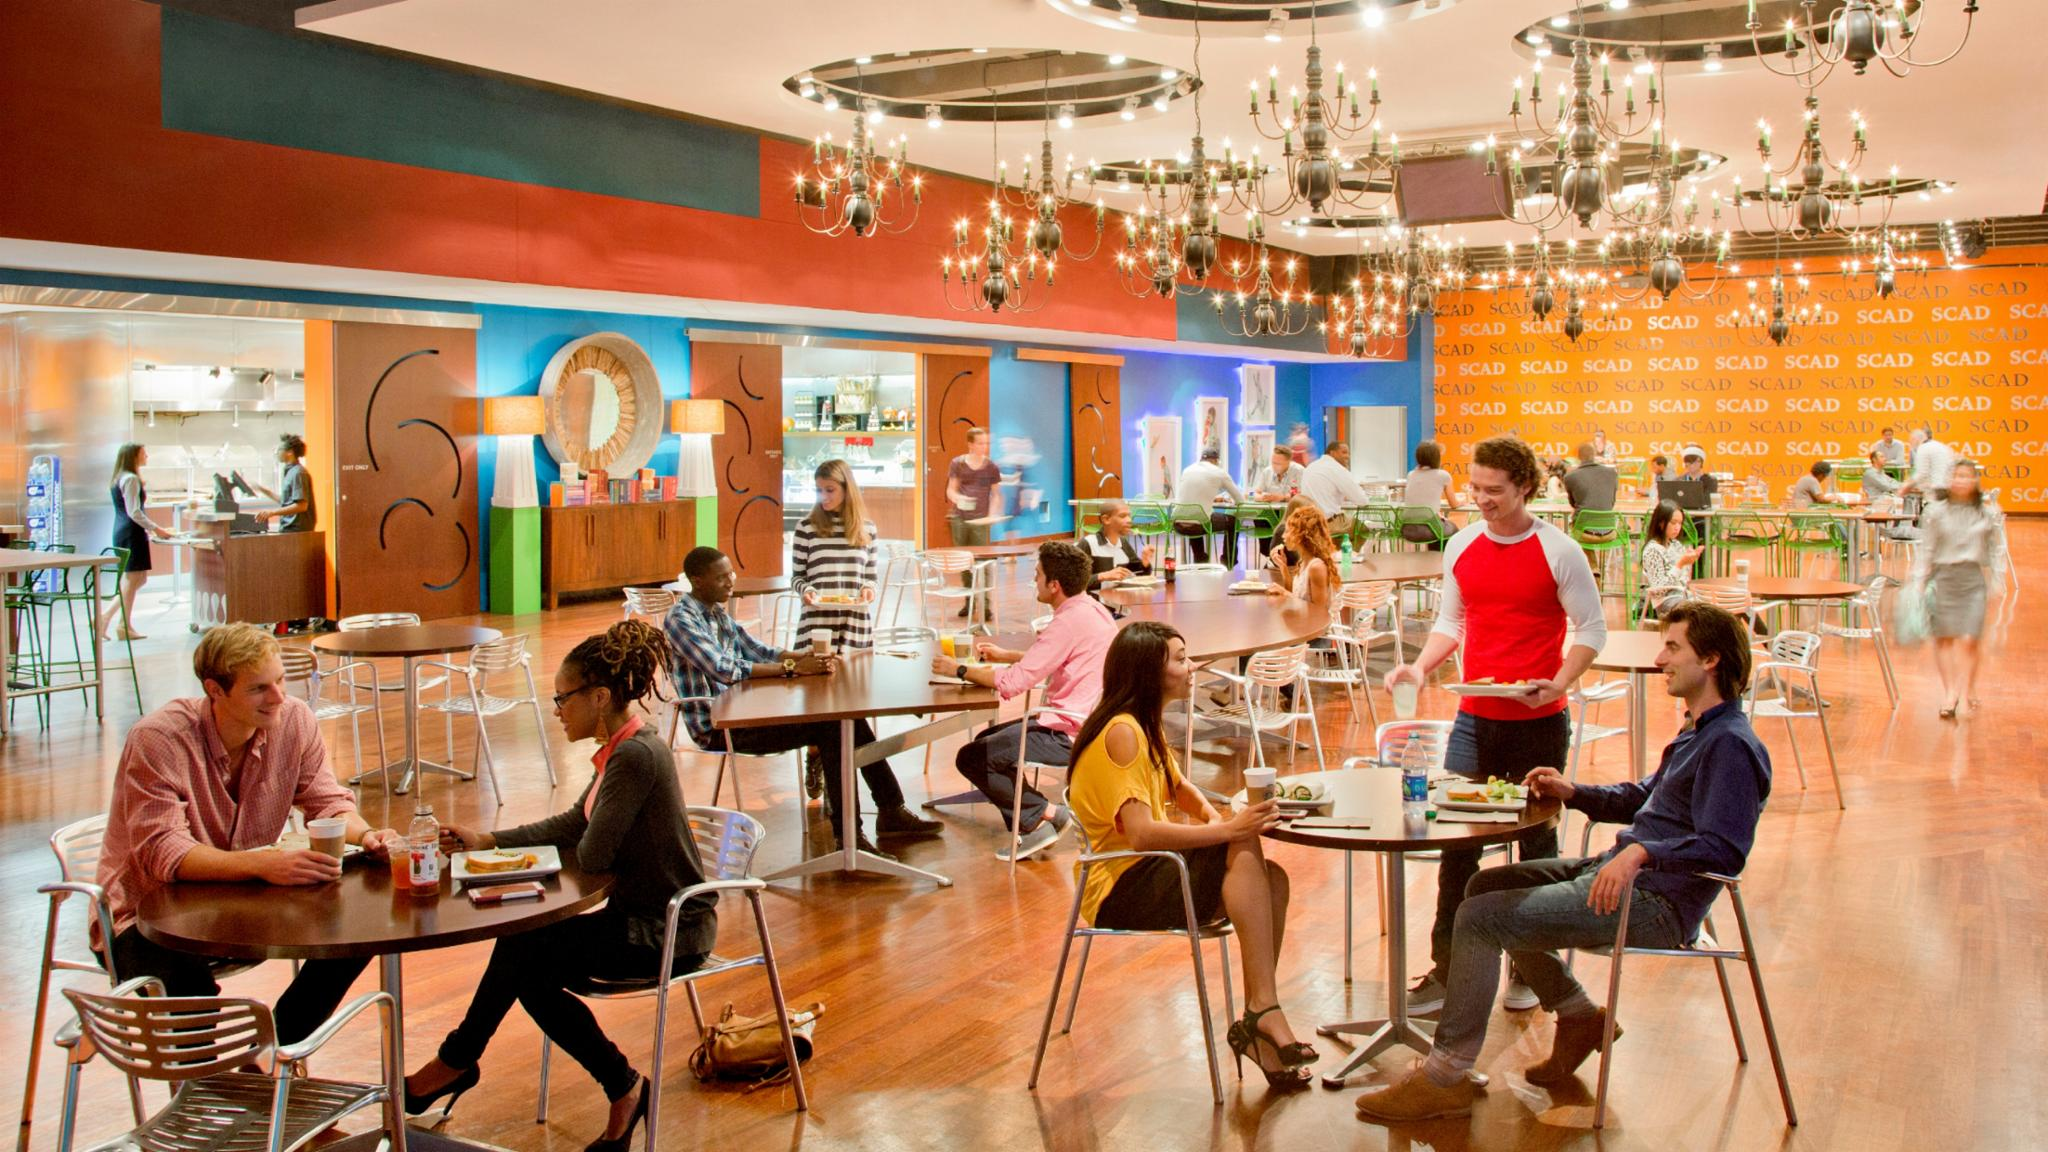 The Hub Dining Center Is Located On The Second Floor Of SCAD Atlanta.